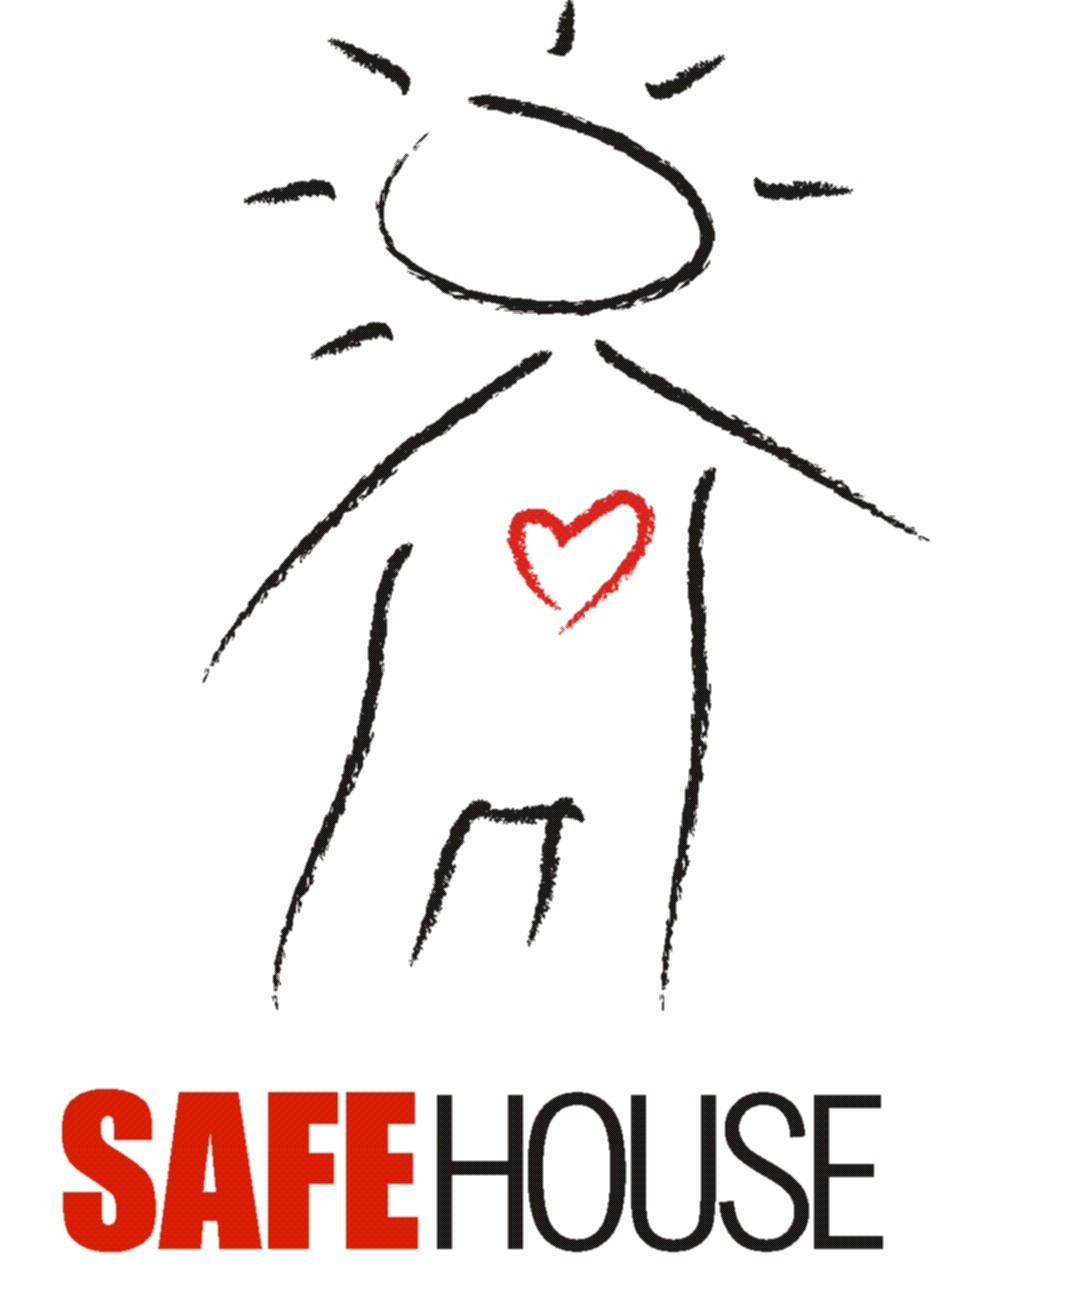 SafeHouse-original-logo